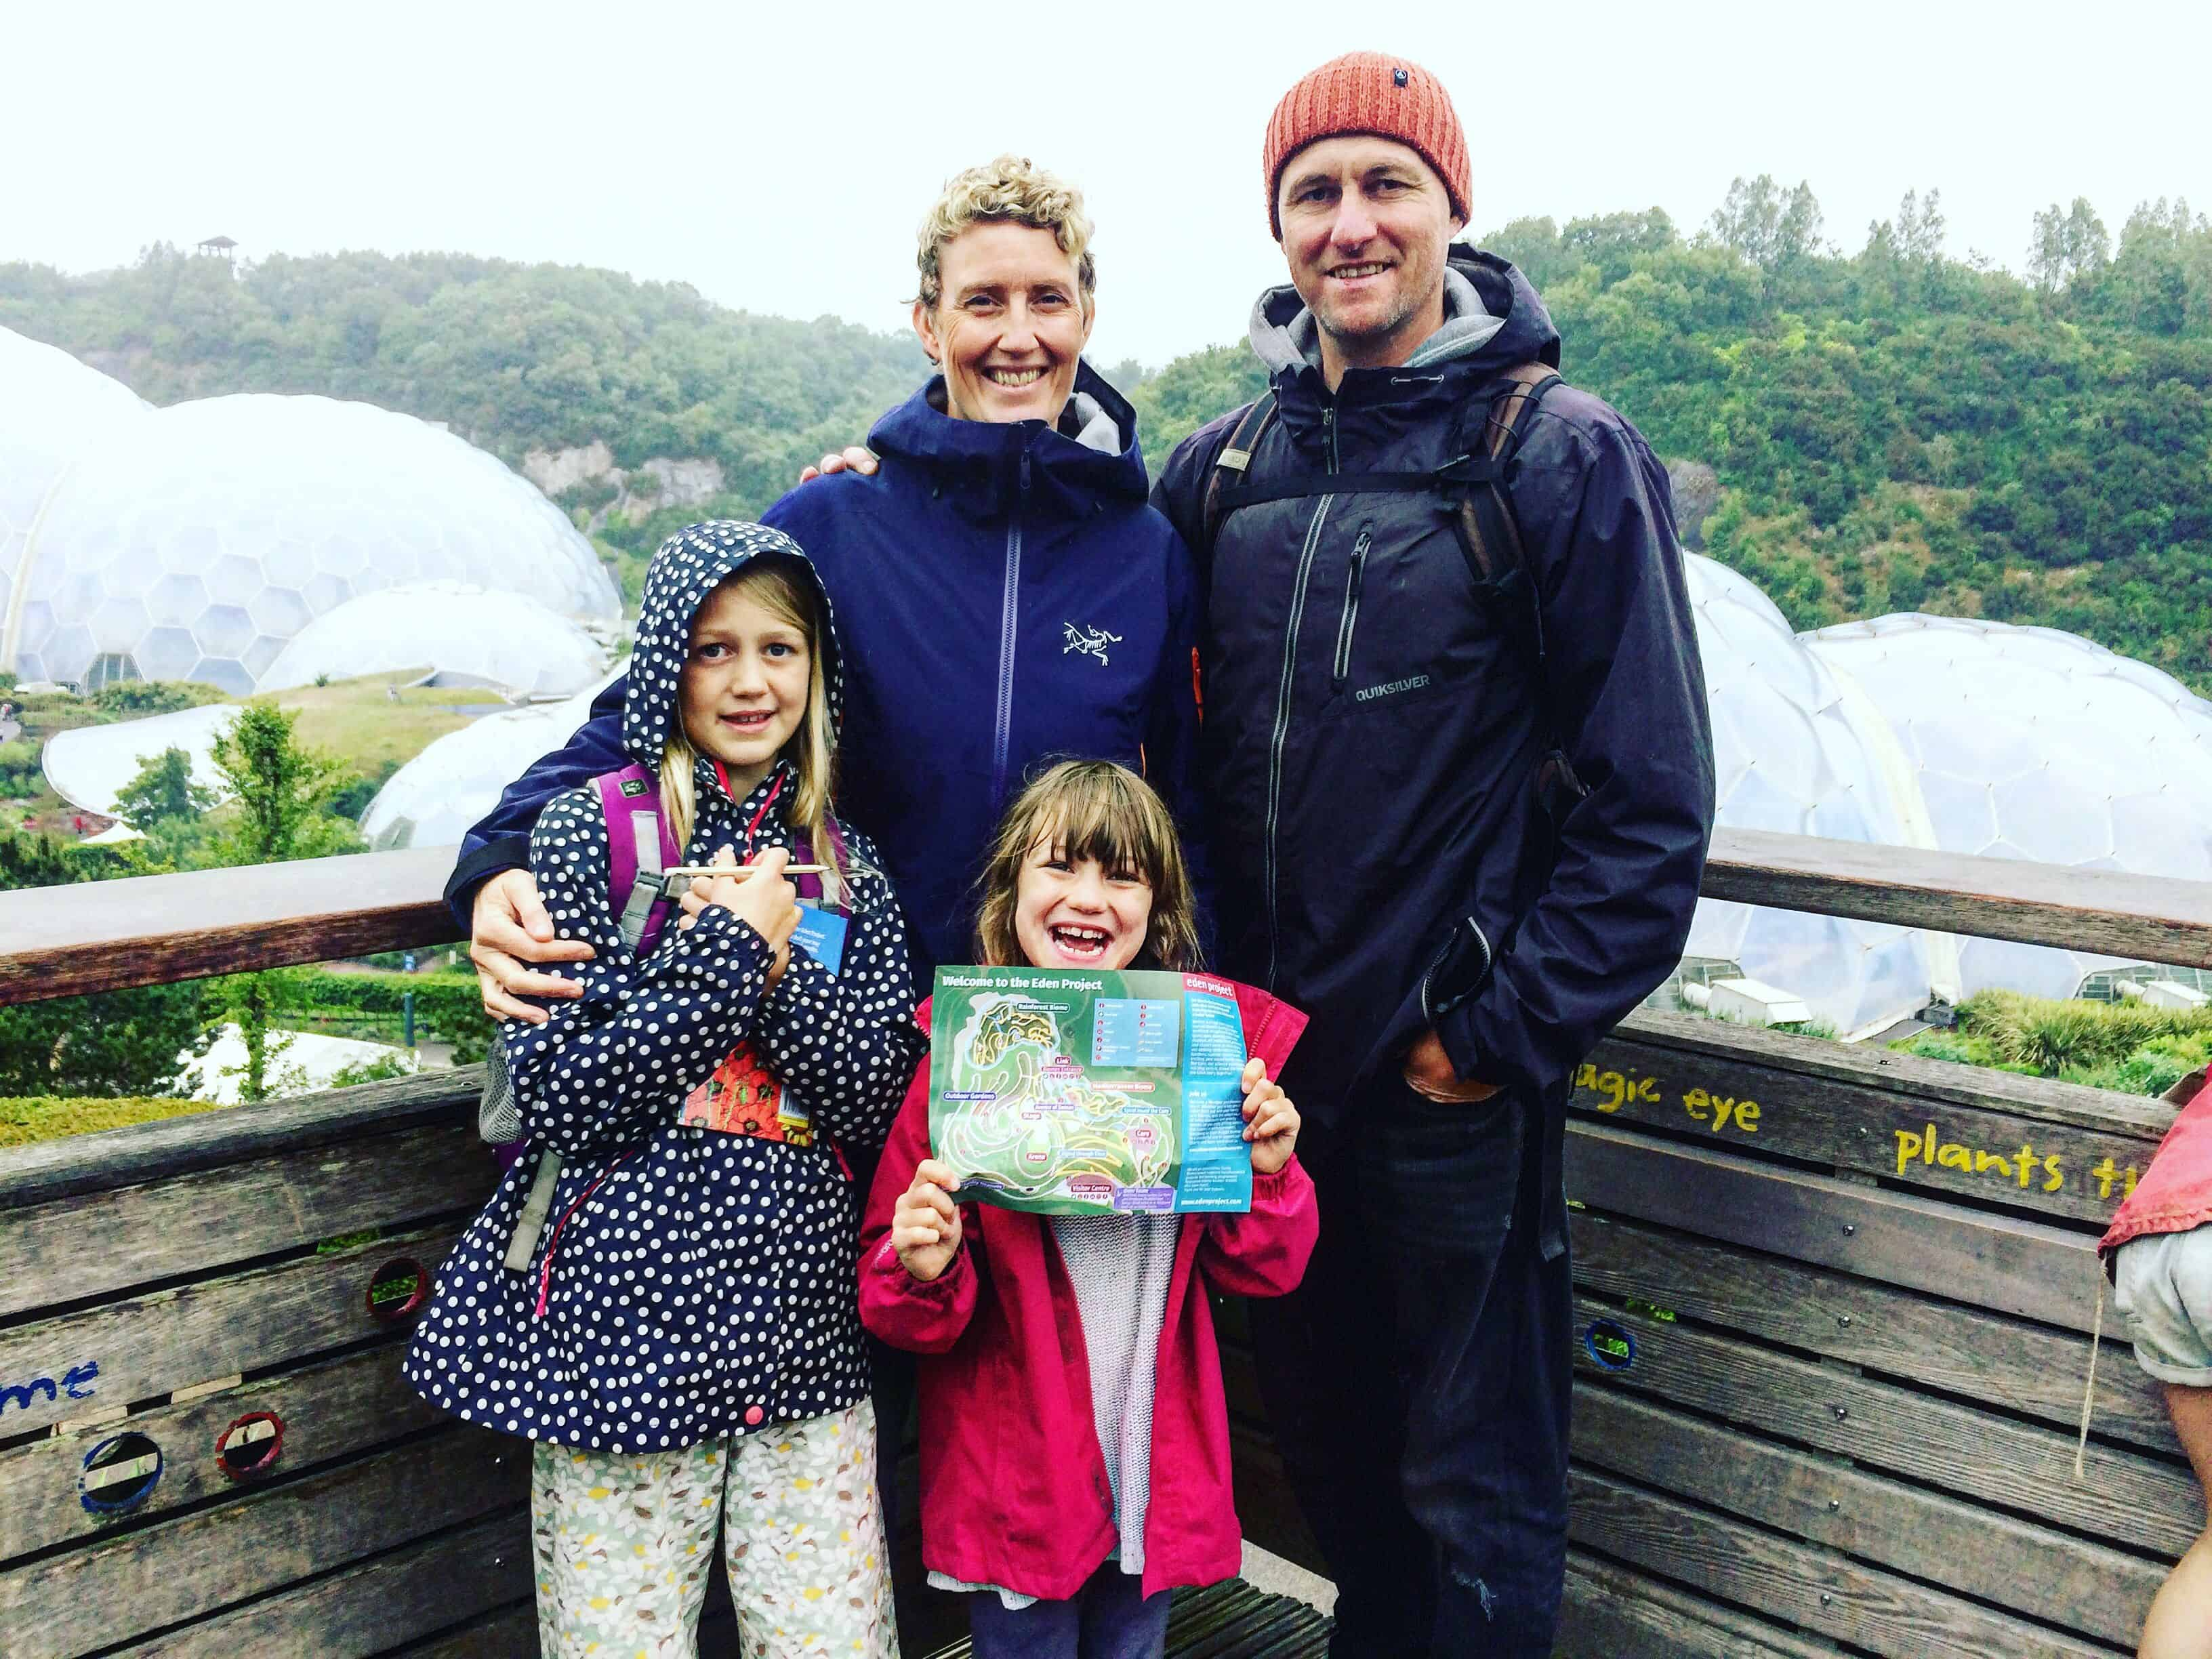 Visiting the Eden Project with kids